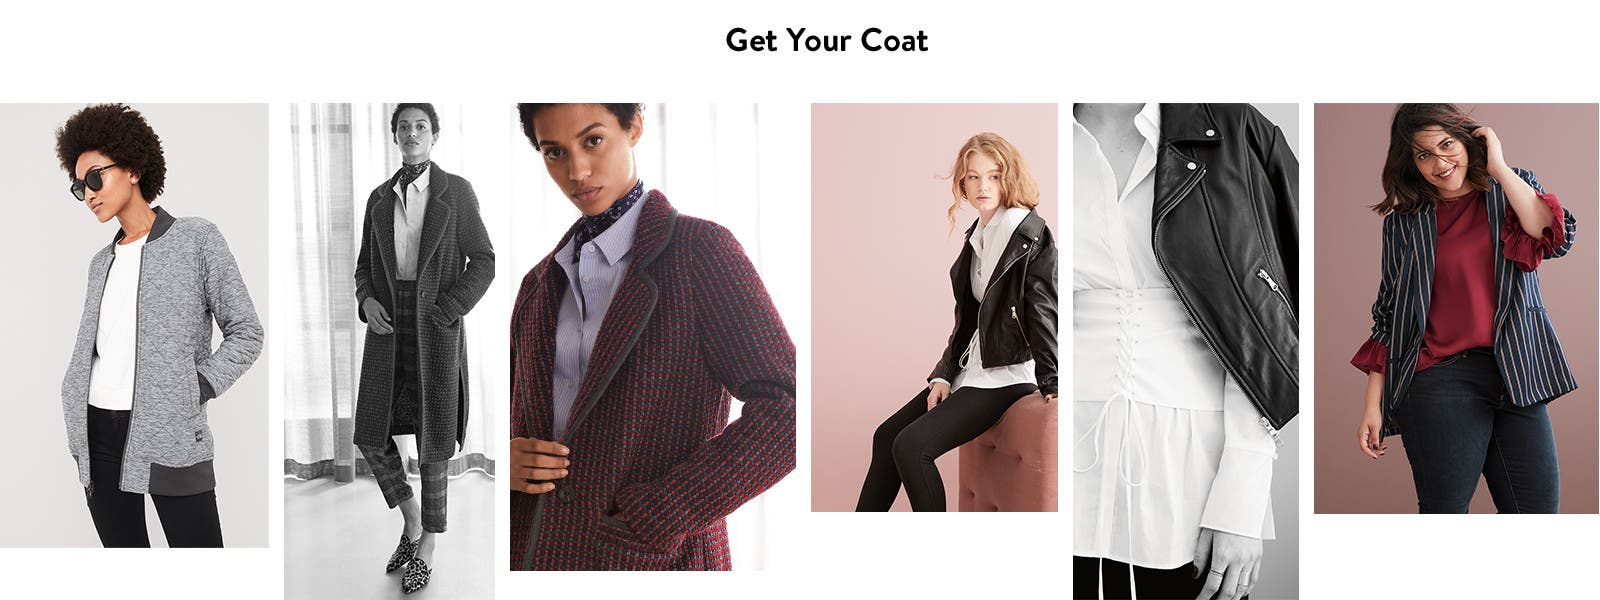 Get your coat: women's fall coats and jackets.